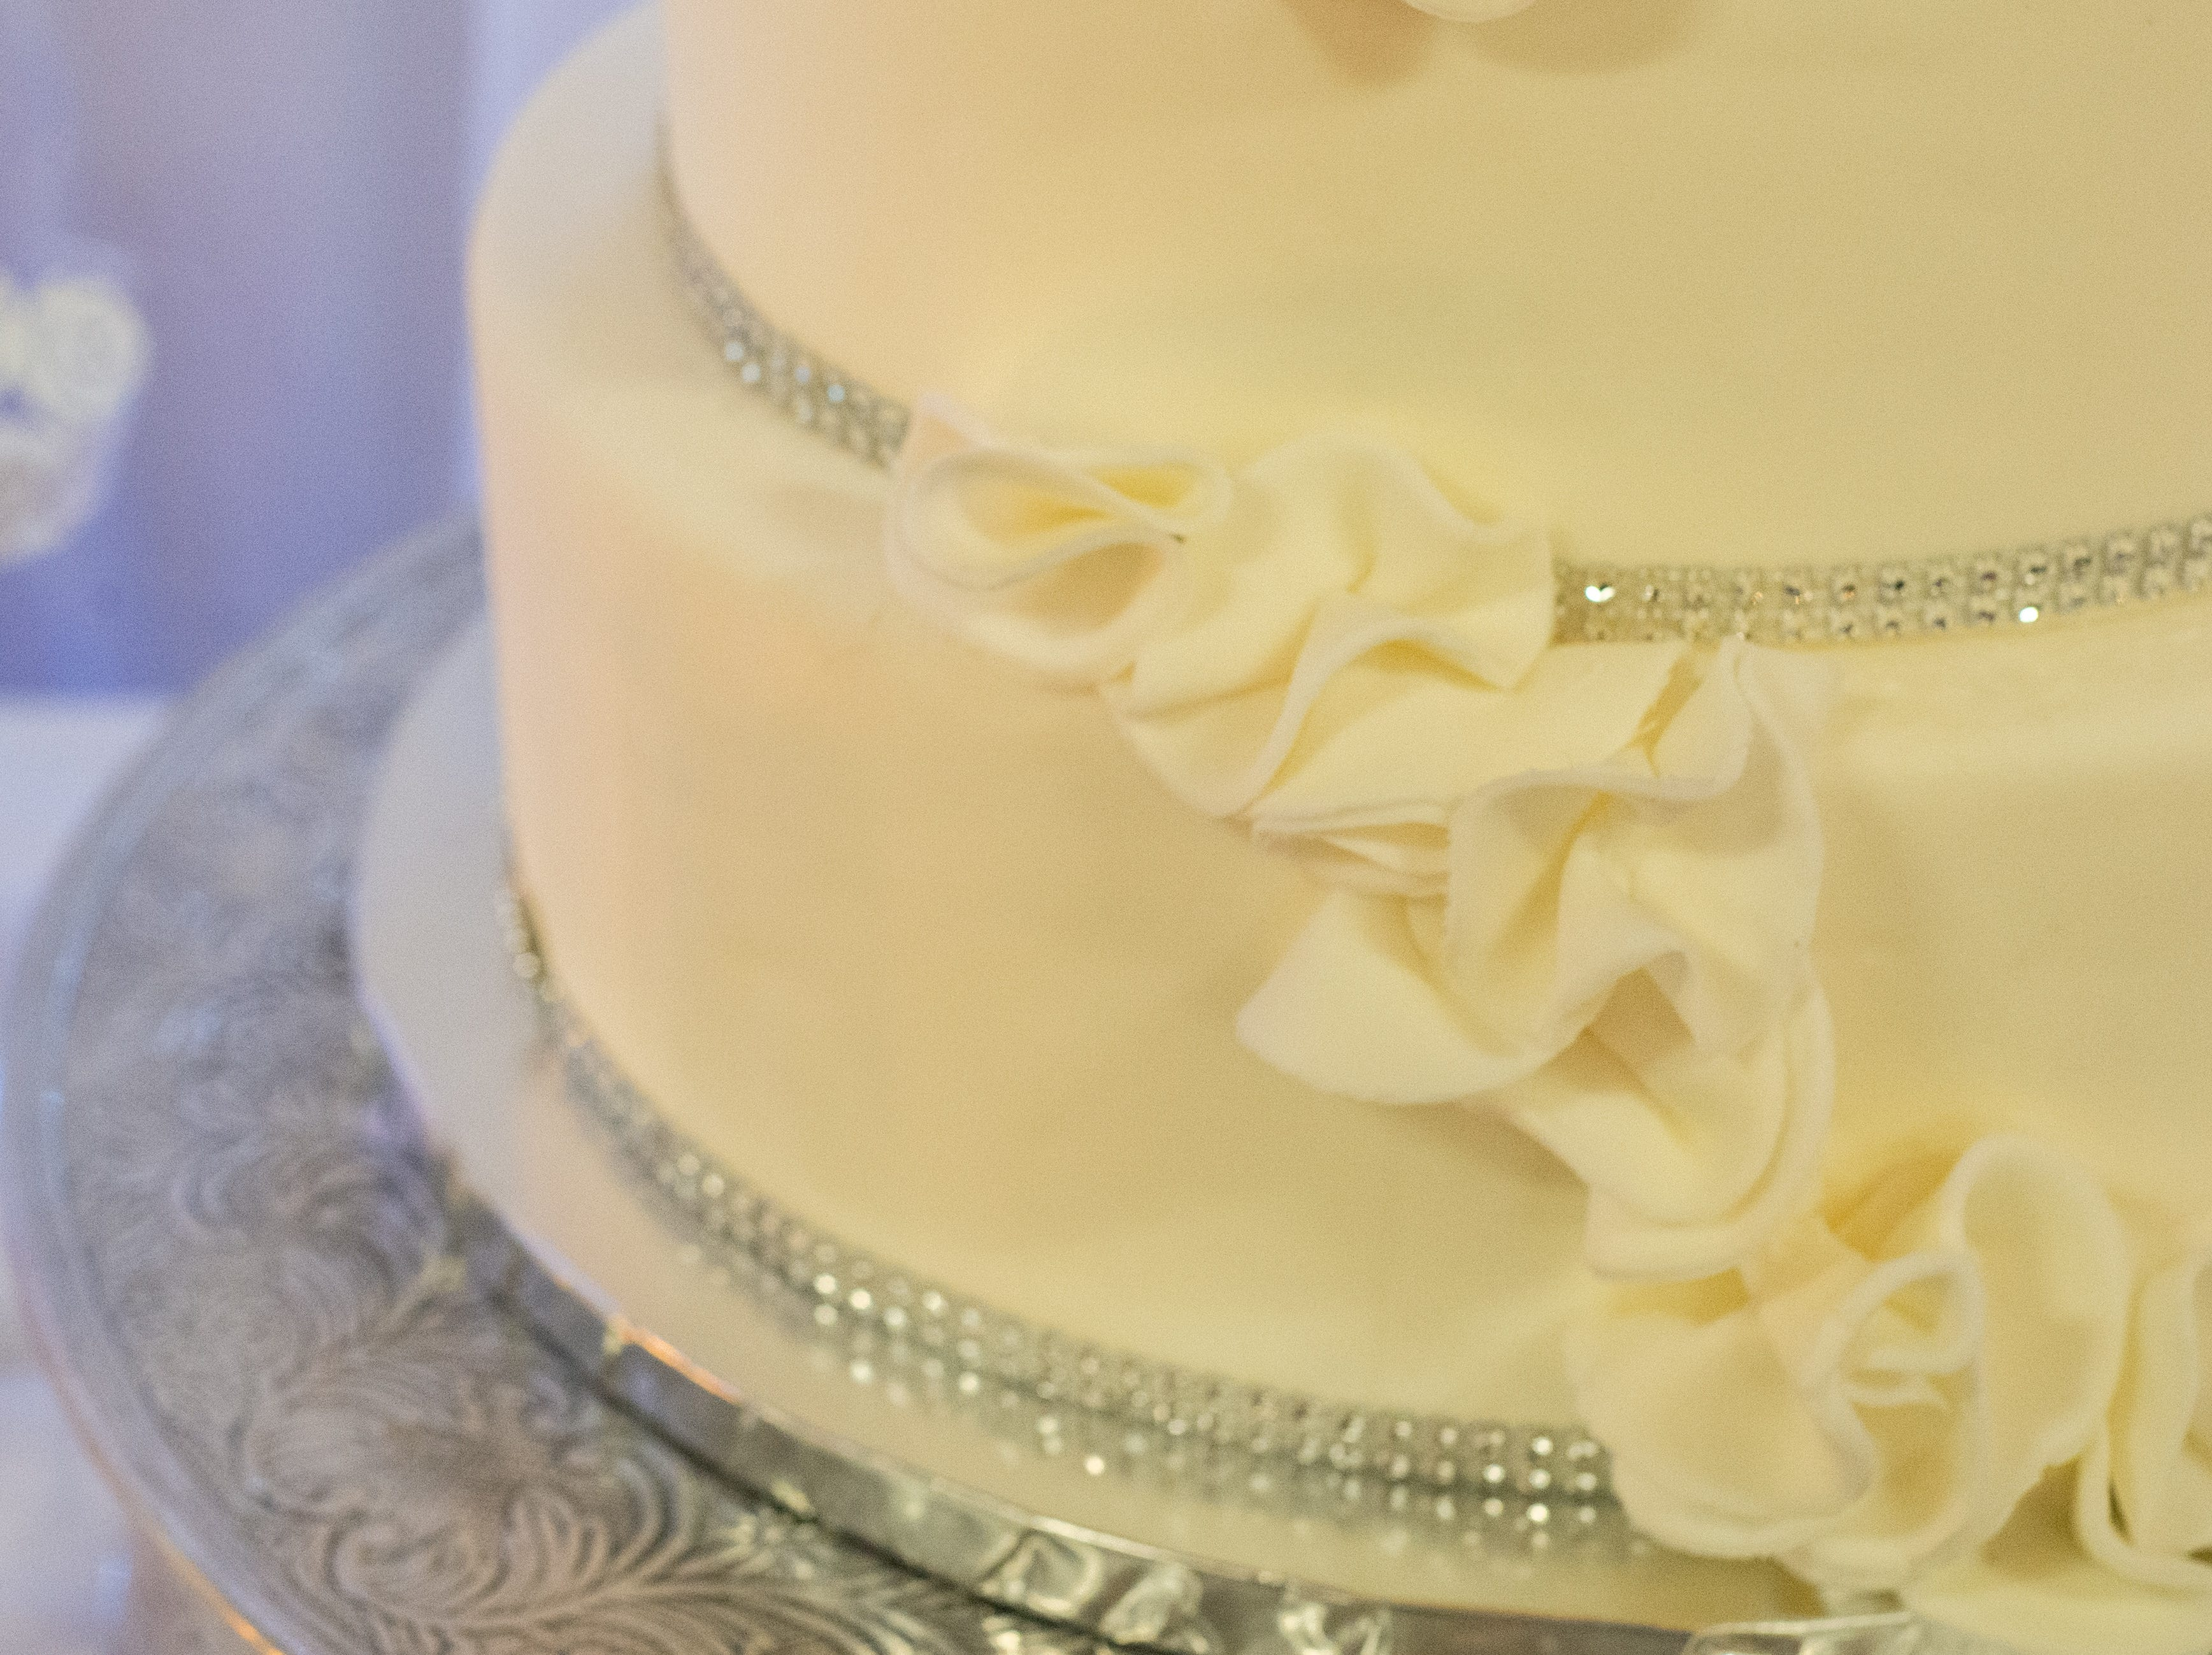 Lili Bella's Cakes brought some sweets to the Sumner County Bridal Show at Epic Event Center in Gallatin on Sunday, Jan. 27.